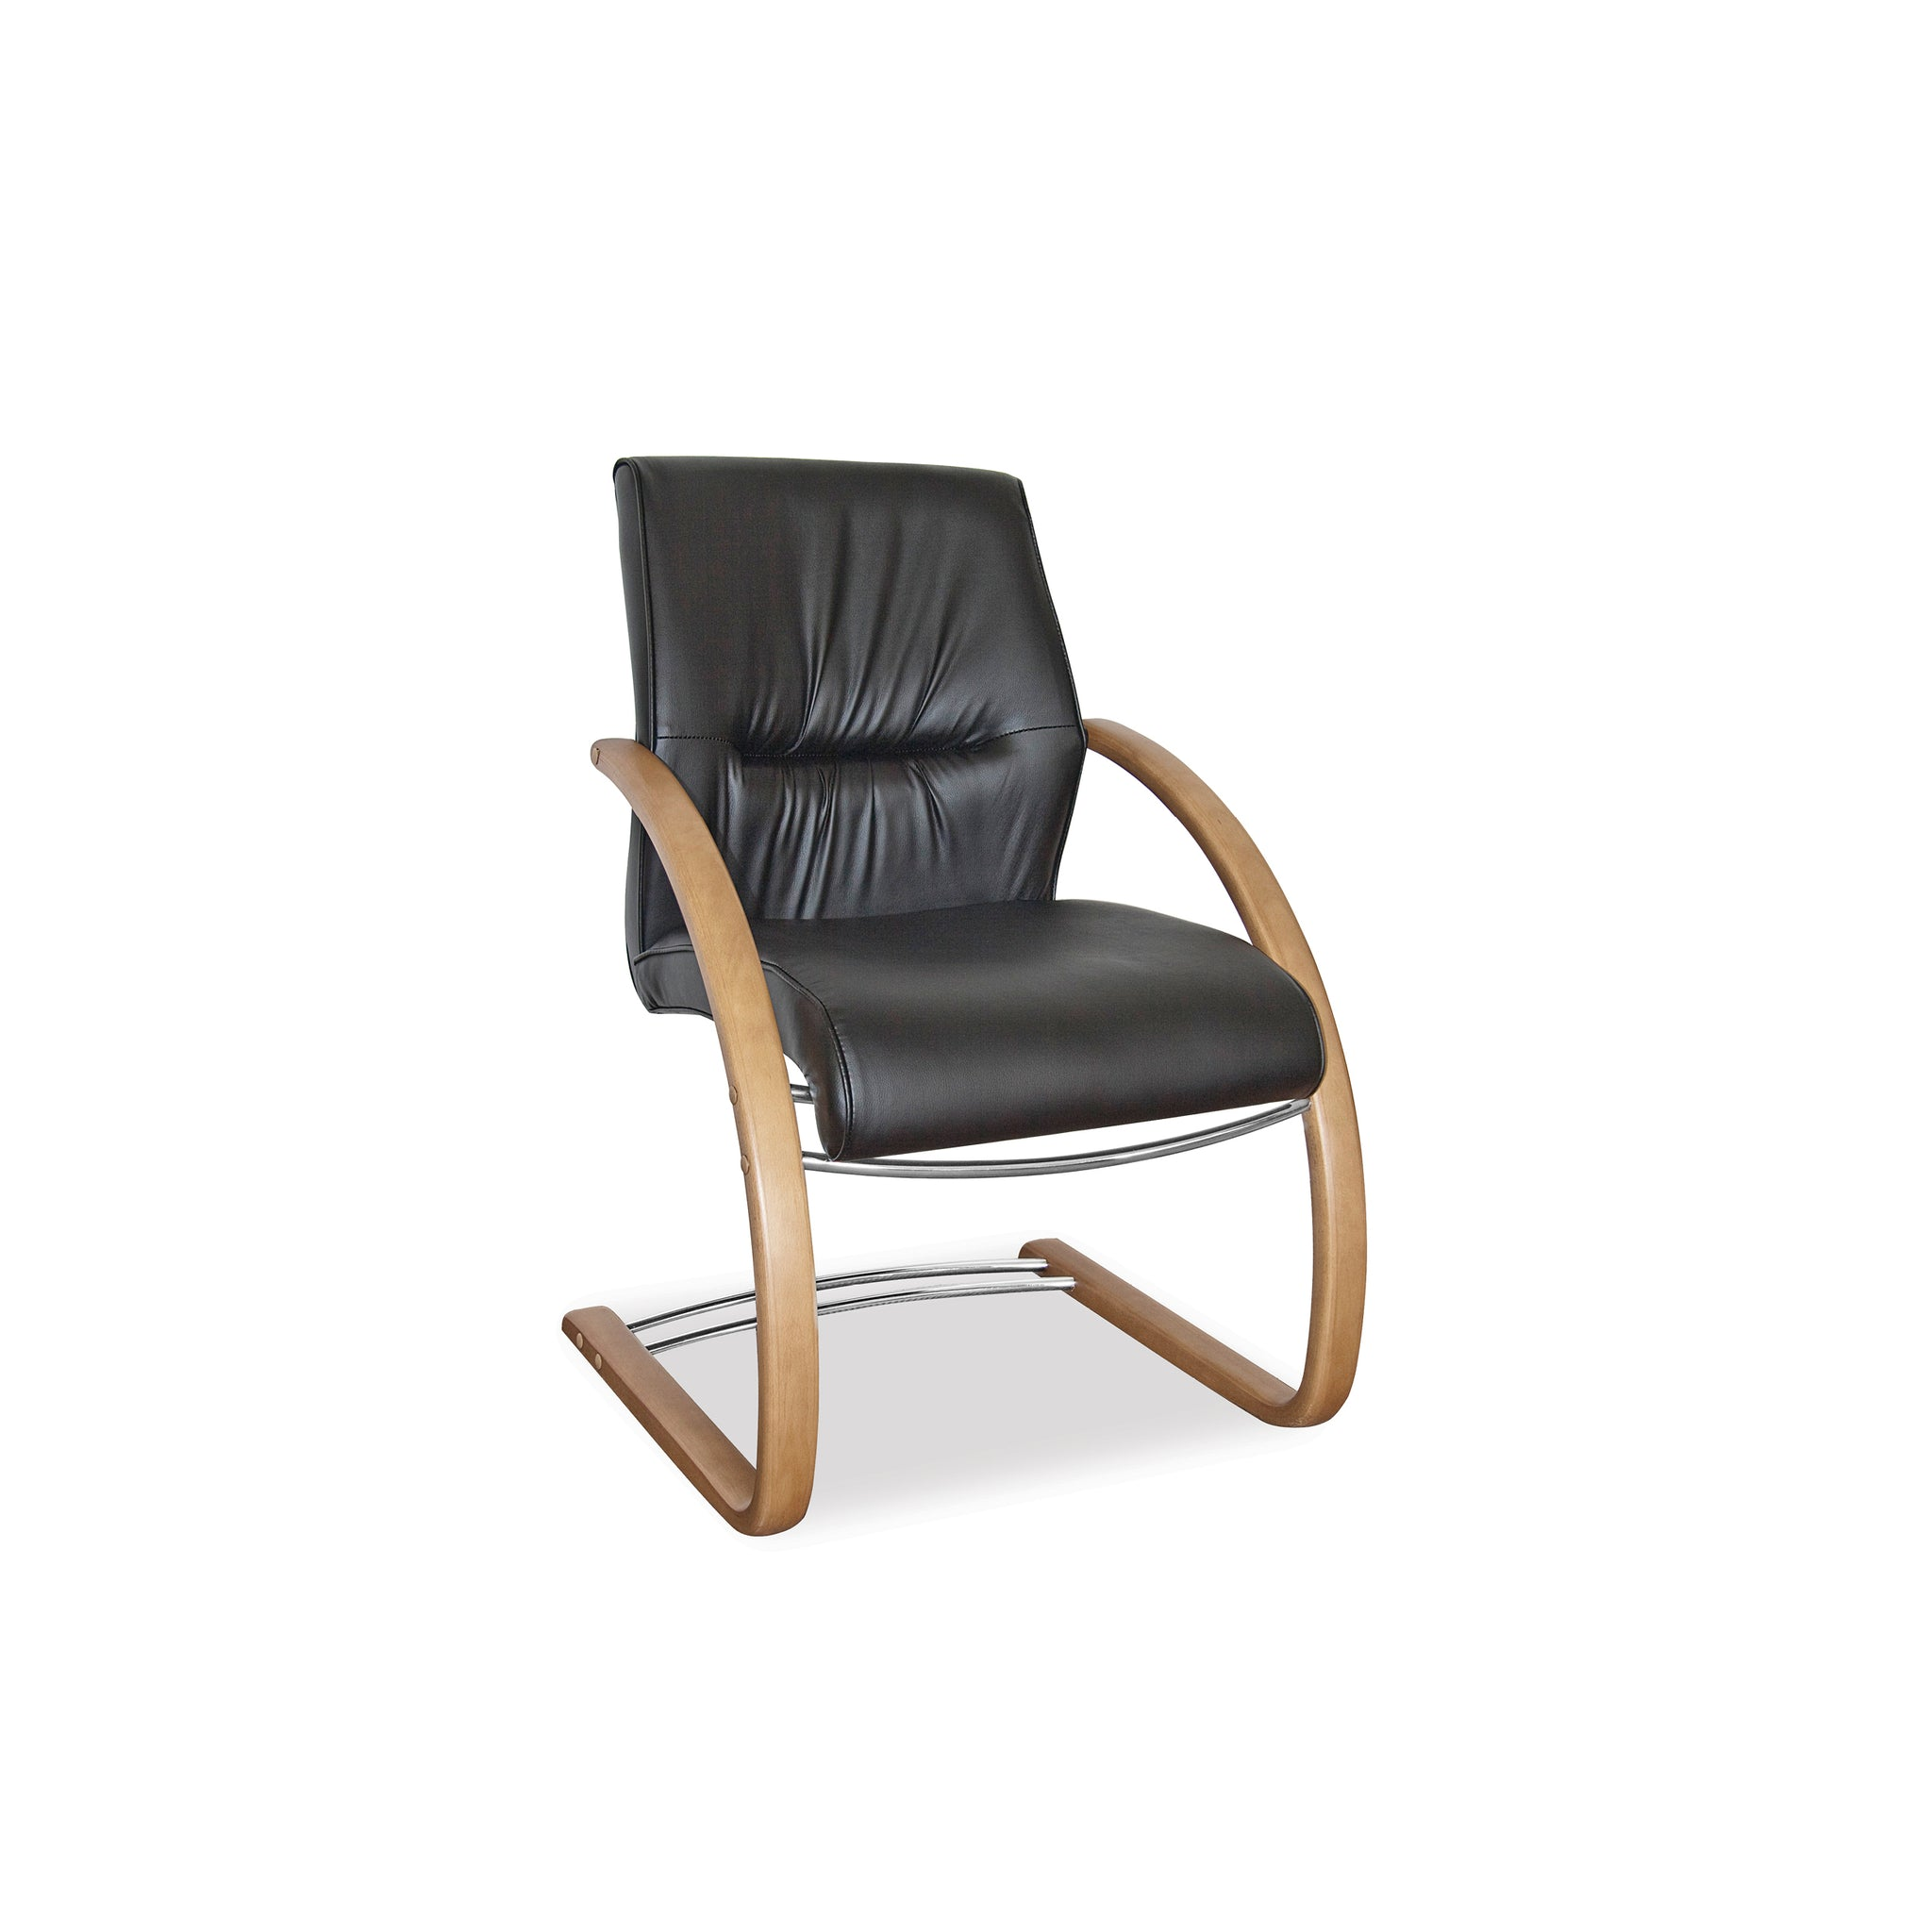 Hedcor Salvador Visitors sleigh office chair